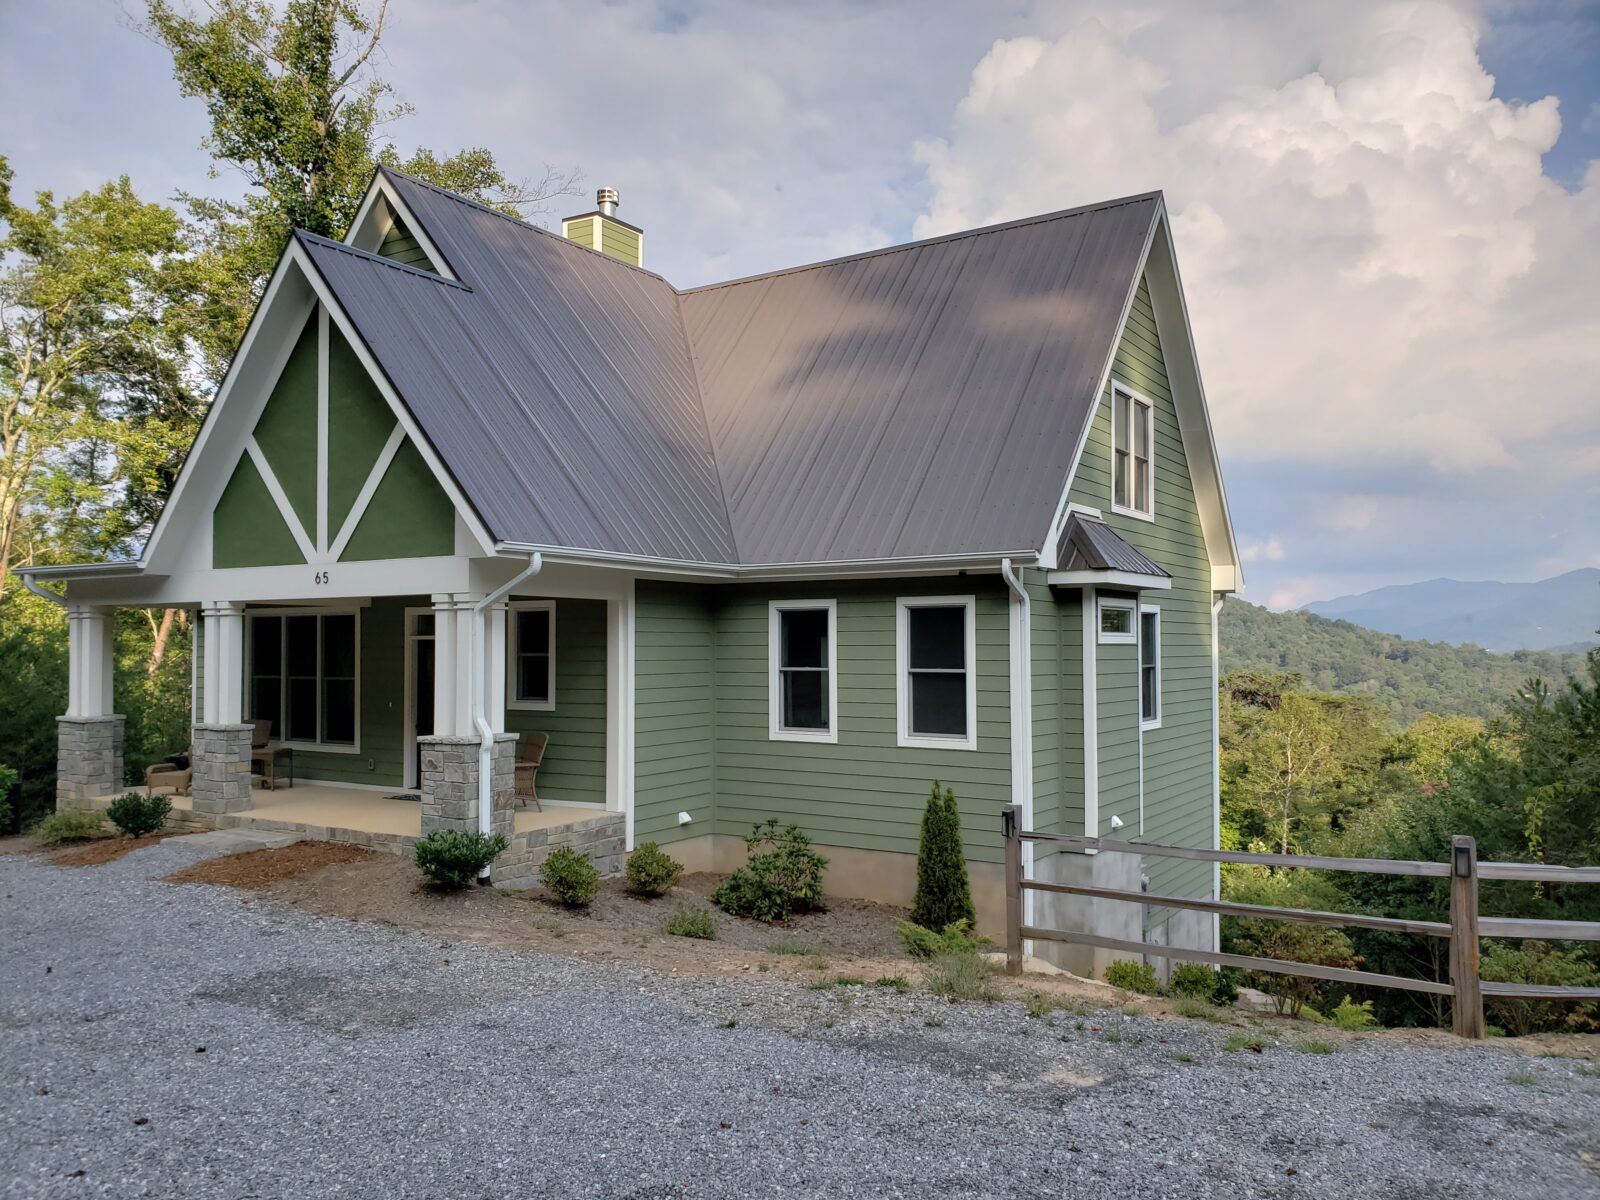 Exterior view of modern mountain home